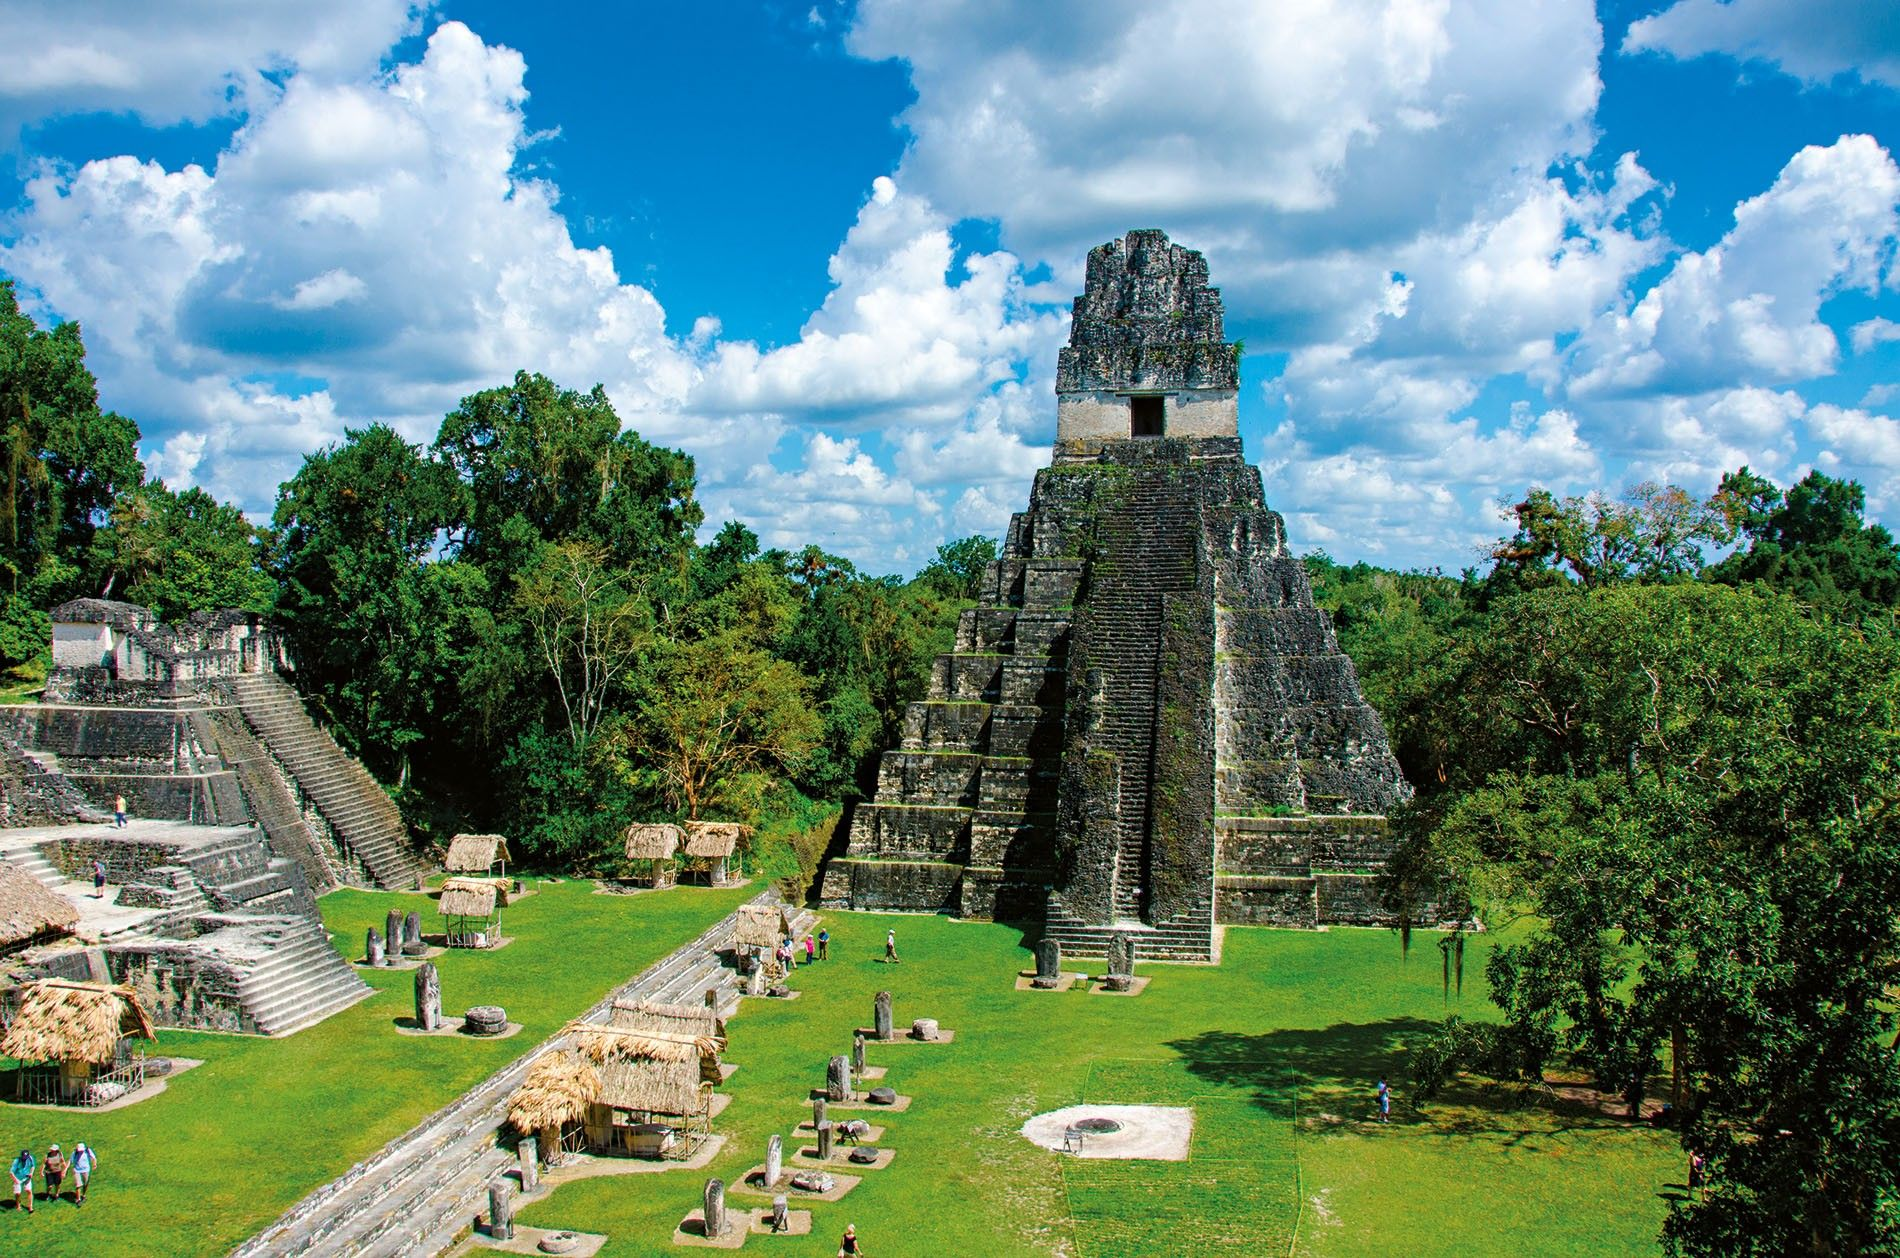 The Temple of the Great Jaguar towers over the main plaza of the ancient Maya city ...